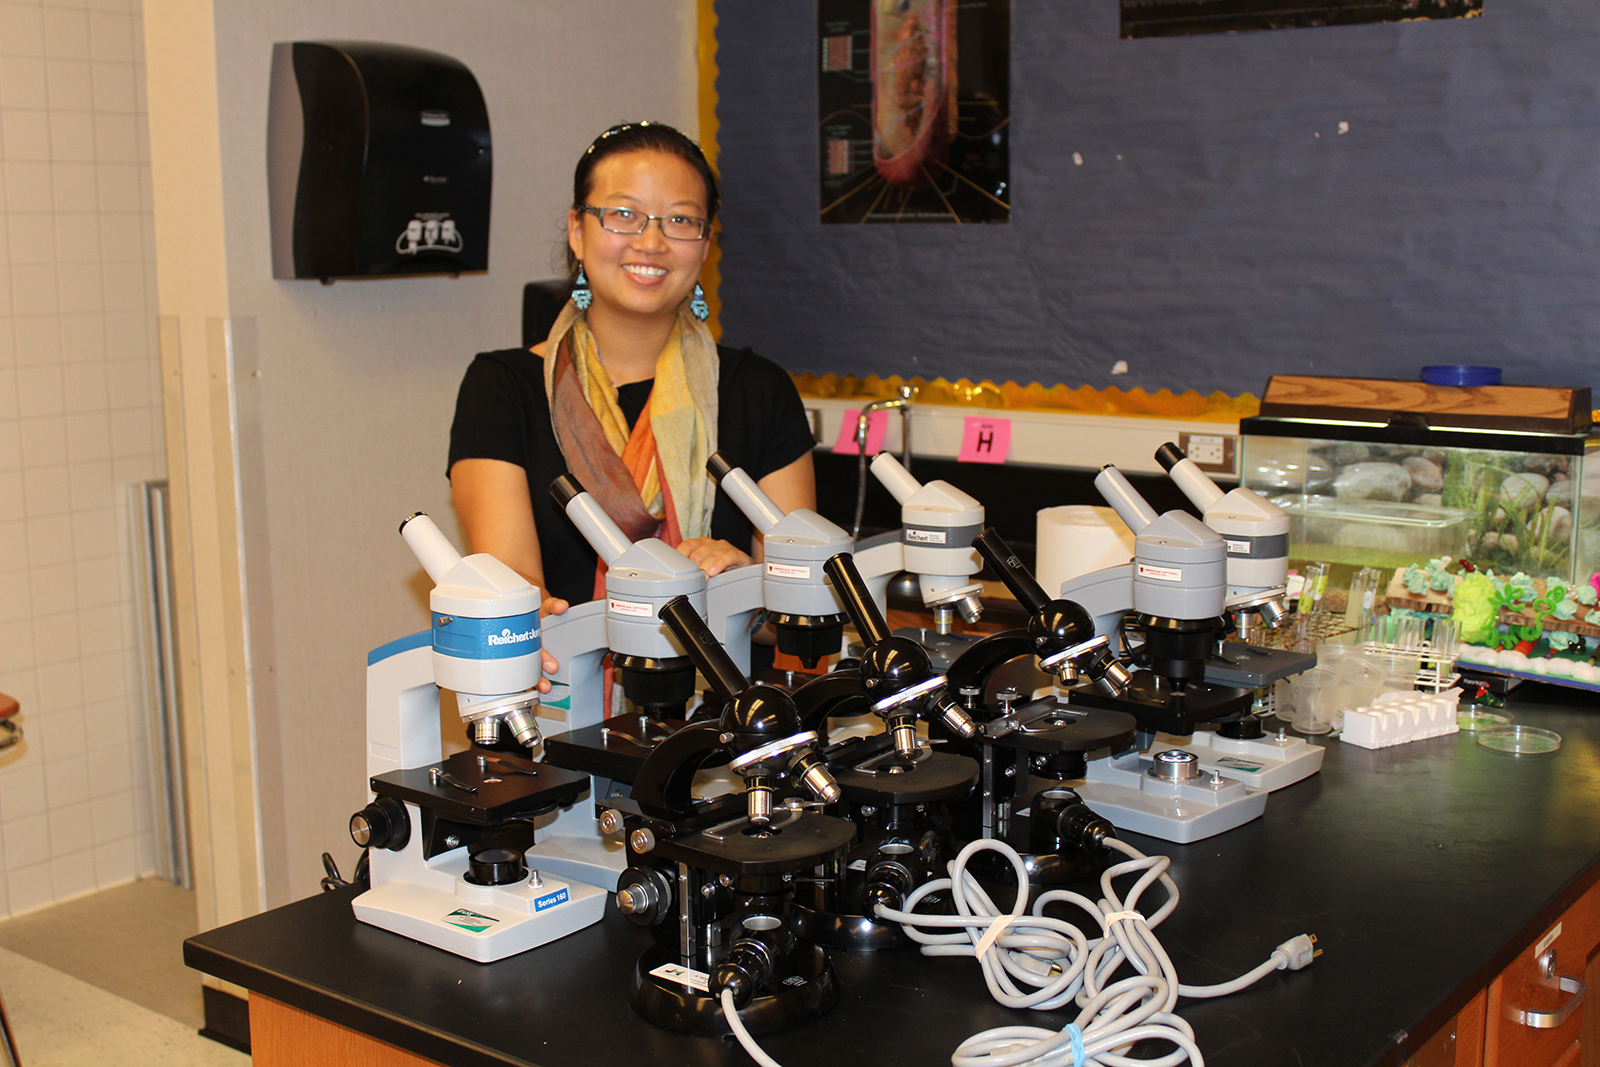 Donation to Biology Program at Dougherty Valley High School